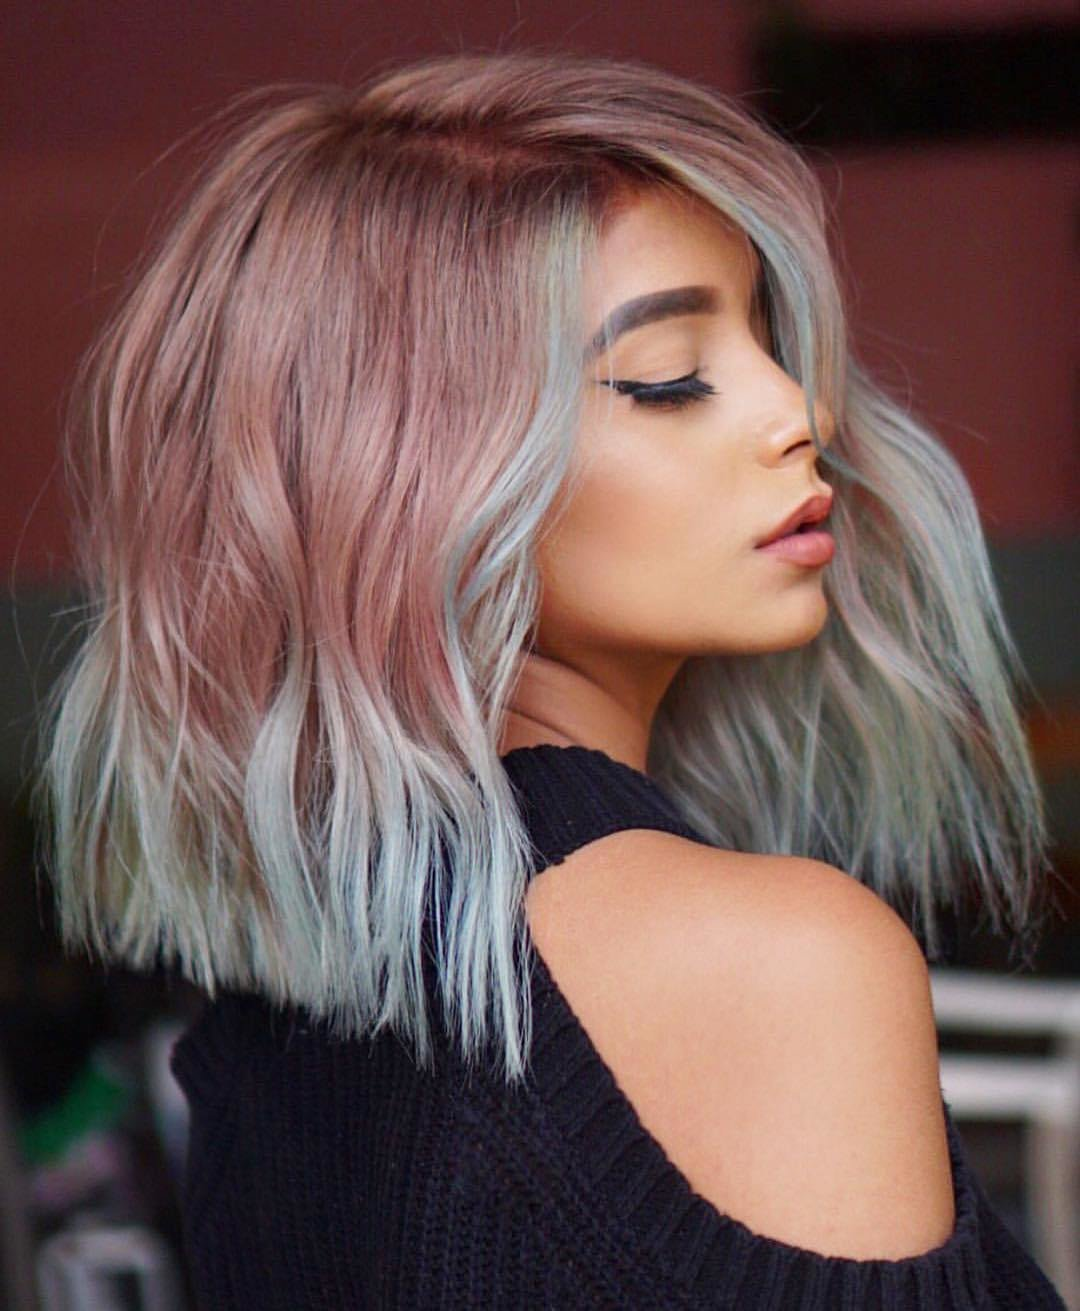 The Best 10 Stylish Lob Hairstyle Ideas Best Shoulder Length Hair For Women 2019 Pictures